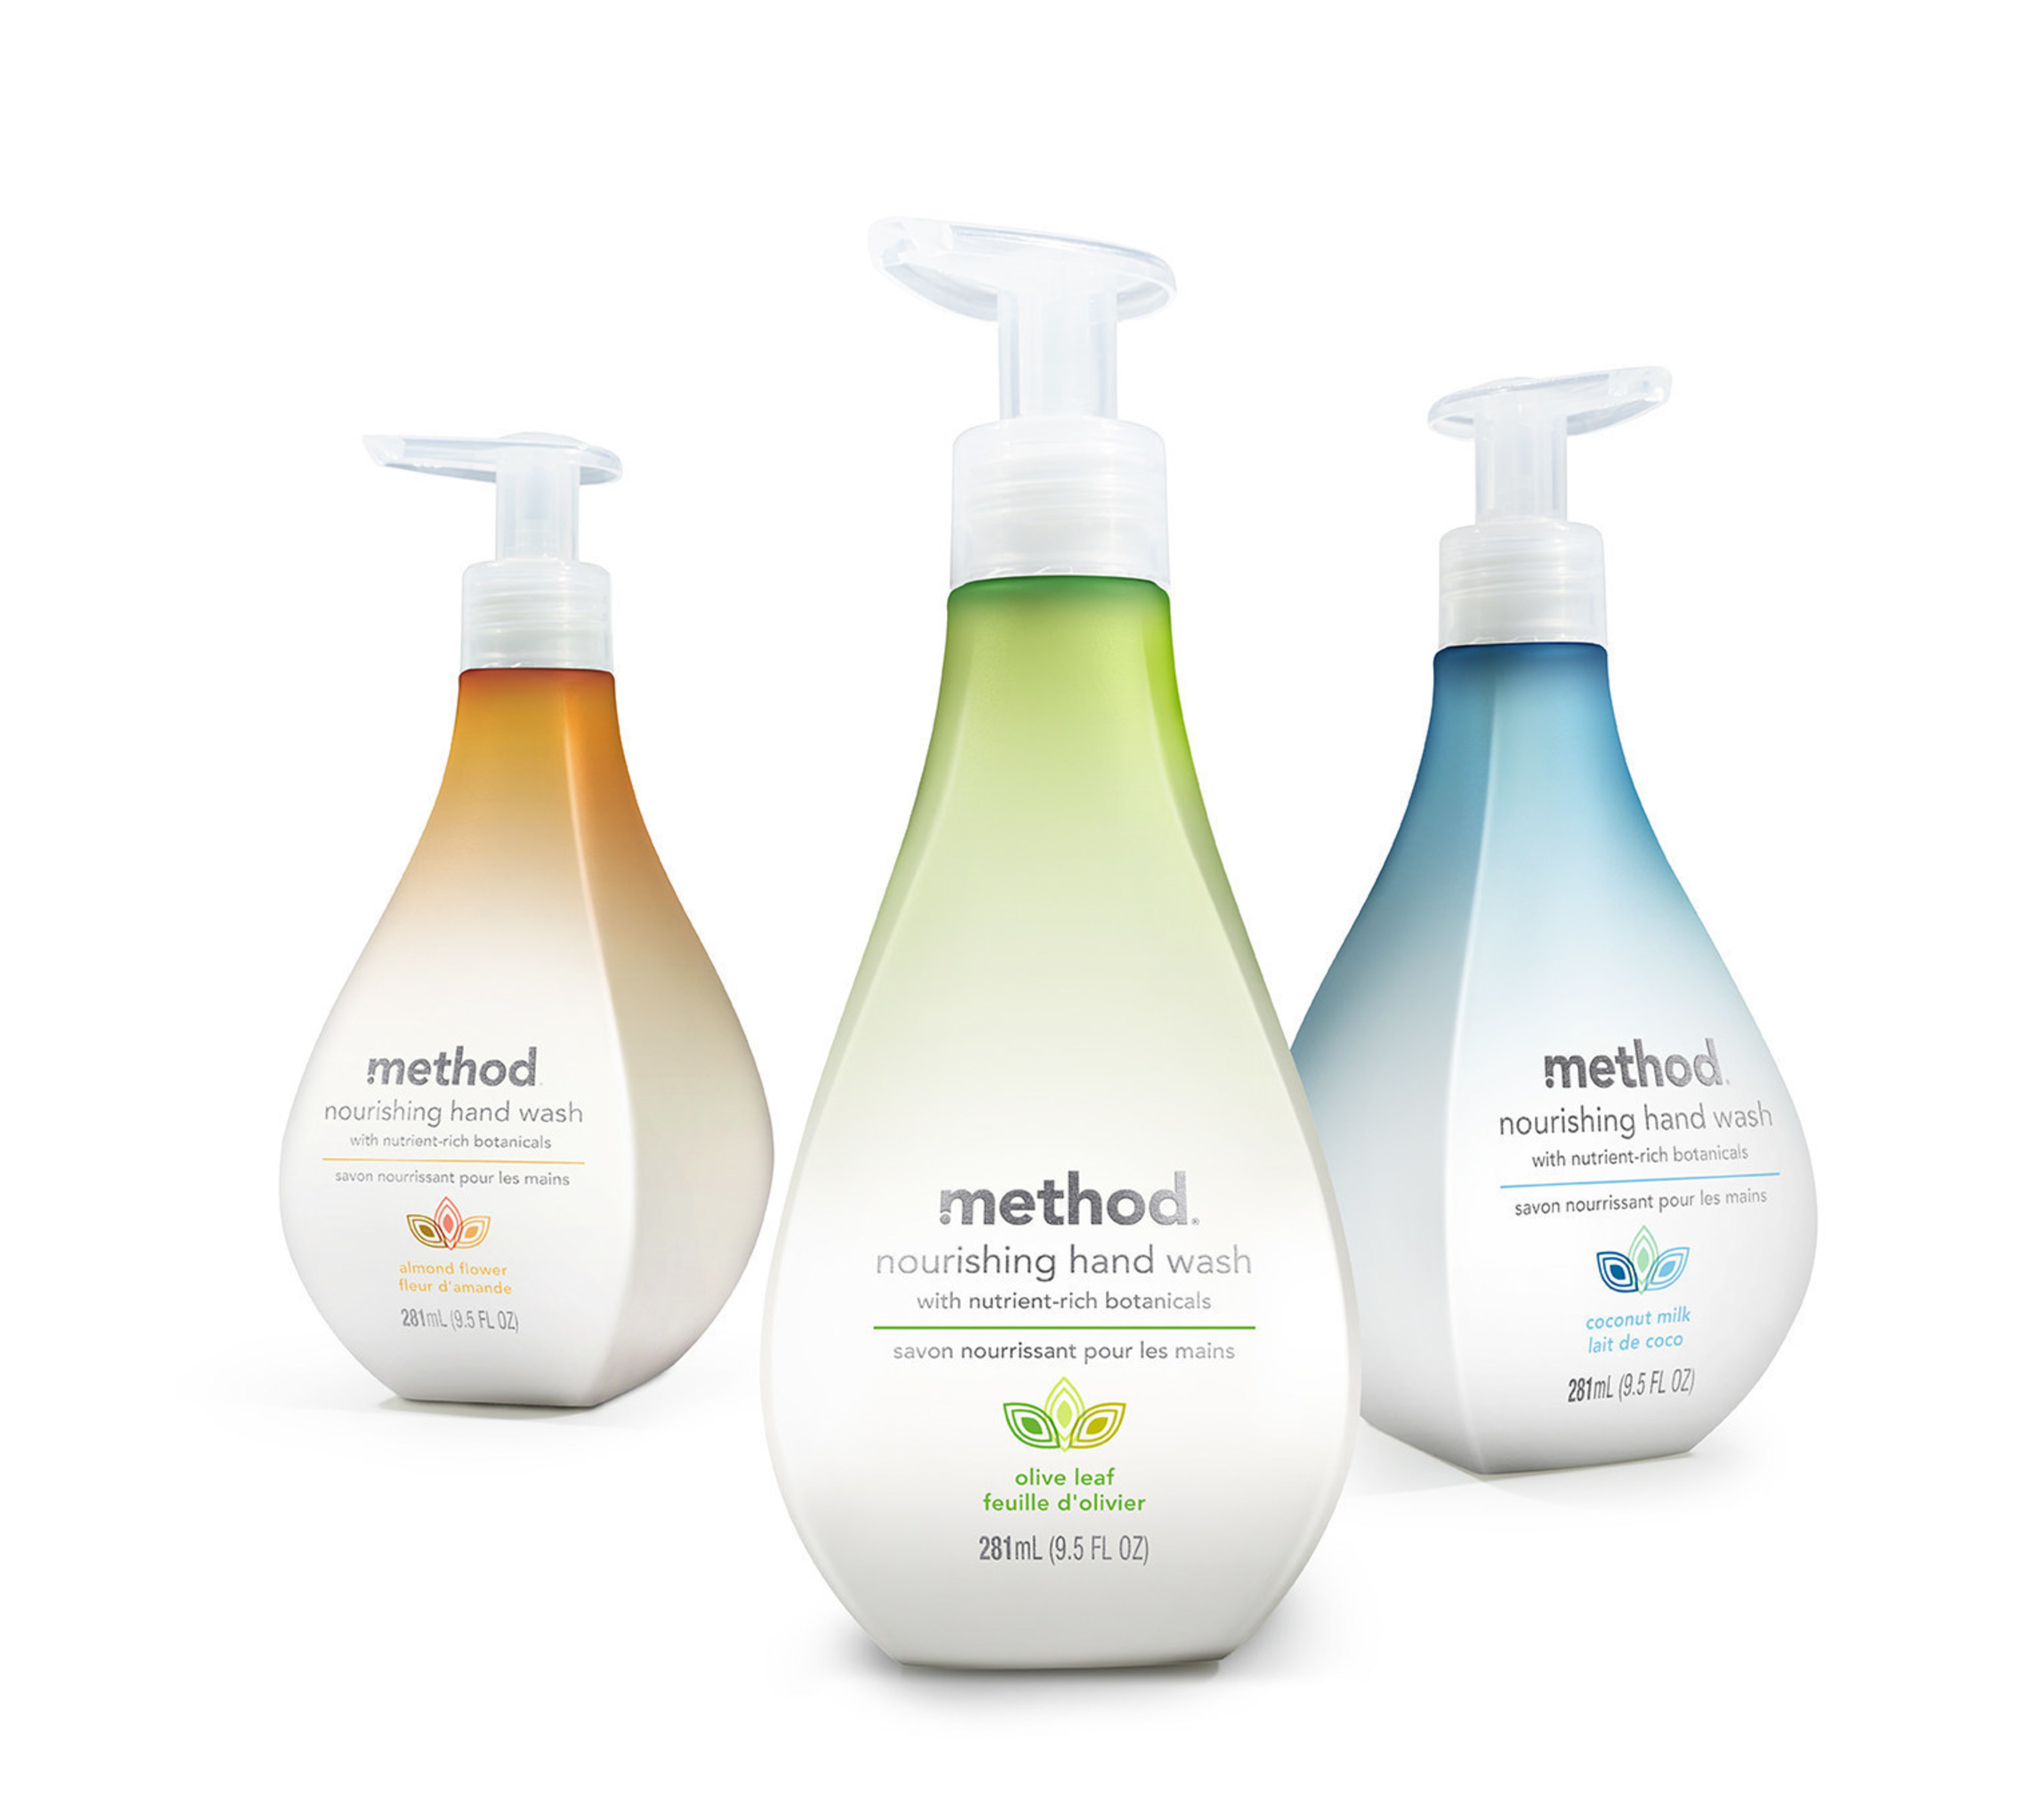 method's new nourishing hand wash comes in three nature-inspired scents--almond flower, olive leaf and coconut milk--and combines nutrient-rich botanicals with a naturally derived hydrating complex to moisturize and soften hands